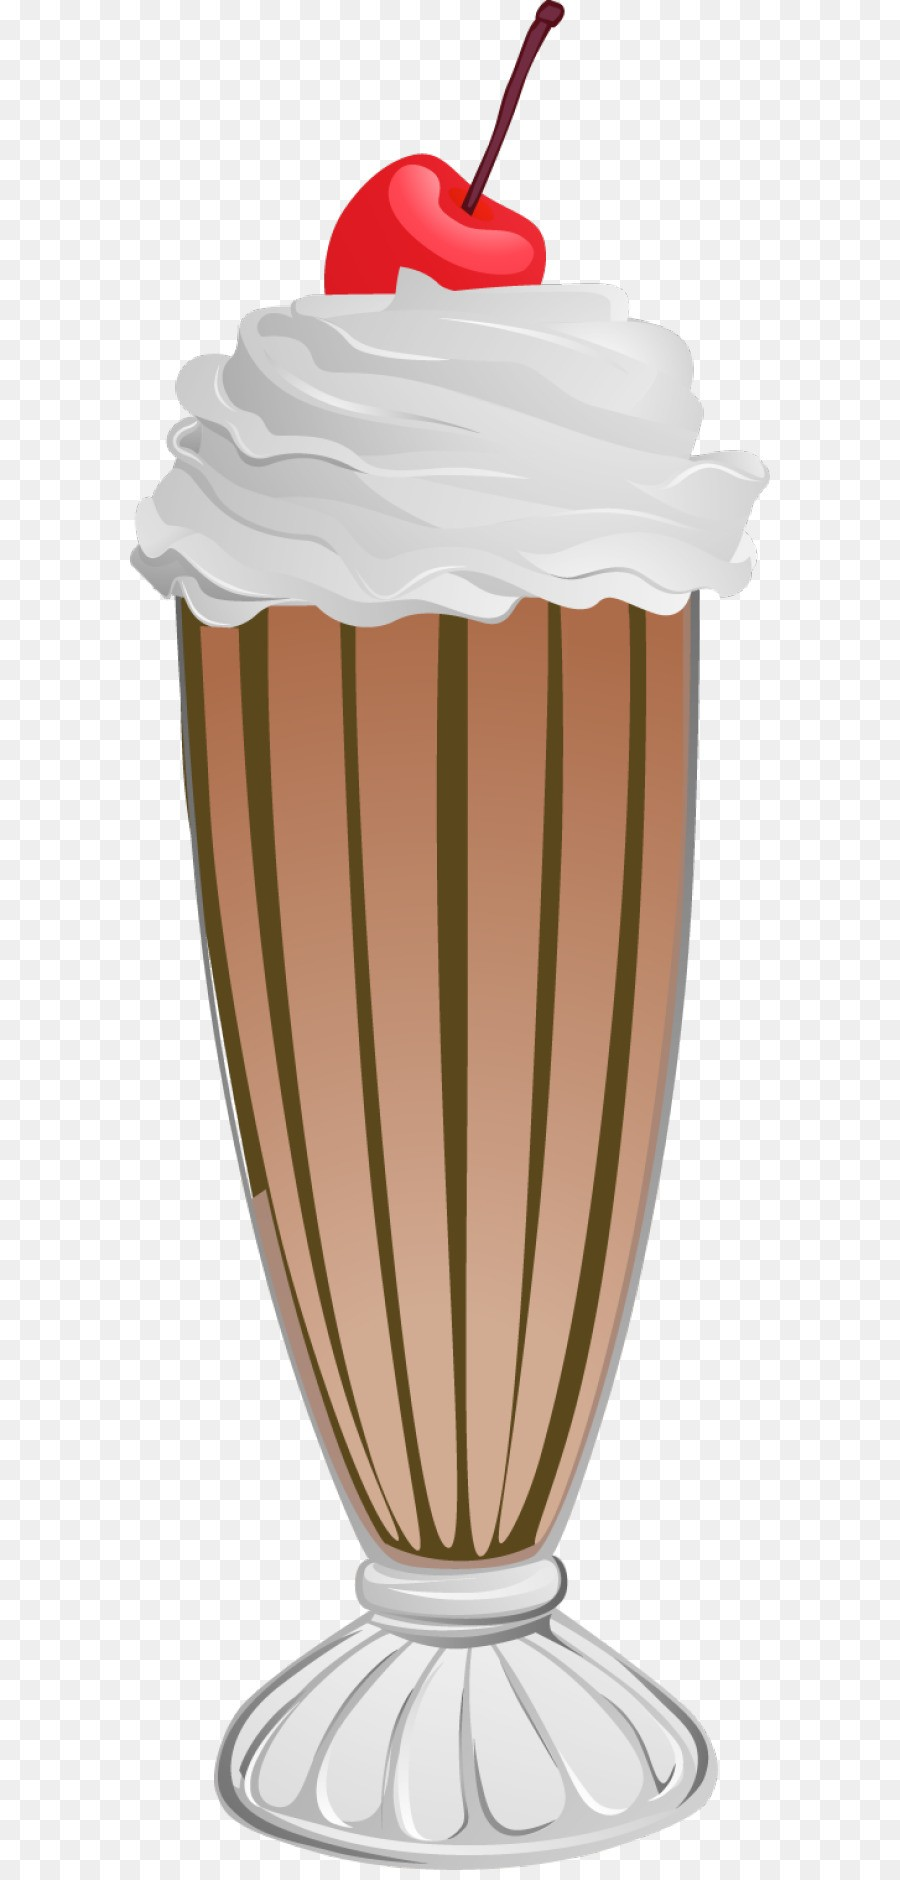 Chocolate milkshake clipart picture free Part 163 Boat Clipart Black And White picture free